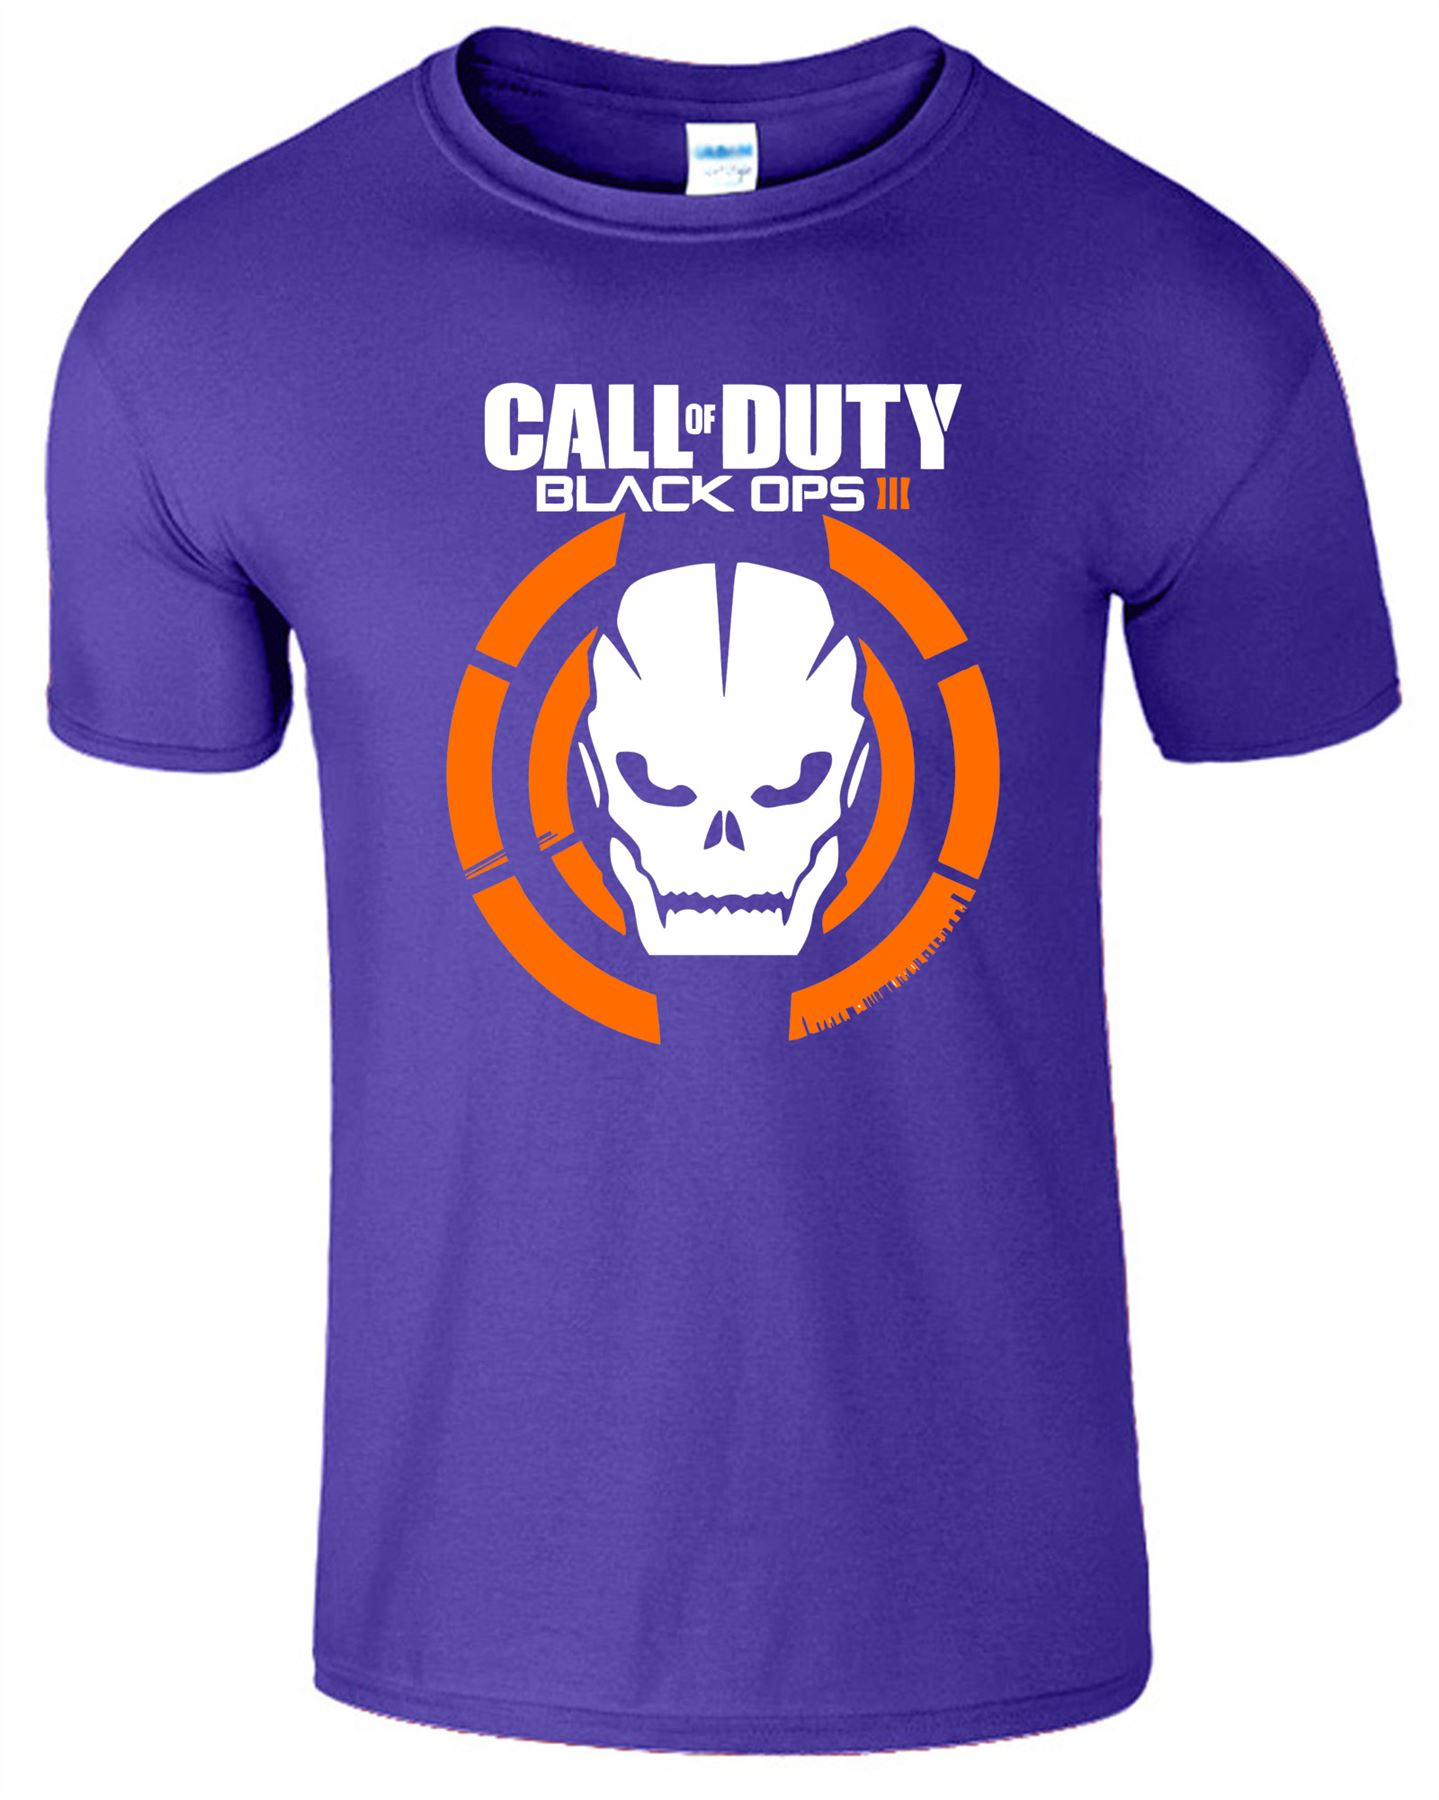 Duty-Black-Ops-Xbox-PS3-PS4-Game-Logo-With-Skull-Mens-Tshirt-Tee-Top-Gift miniatuur 3